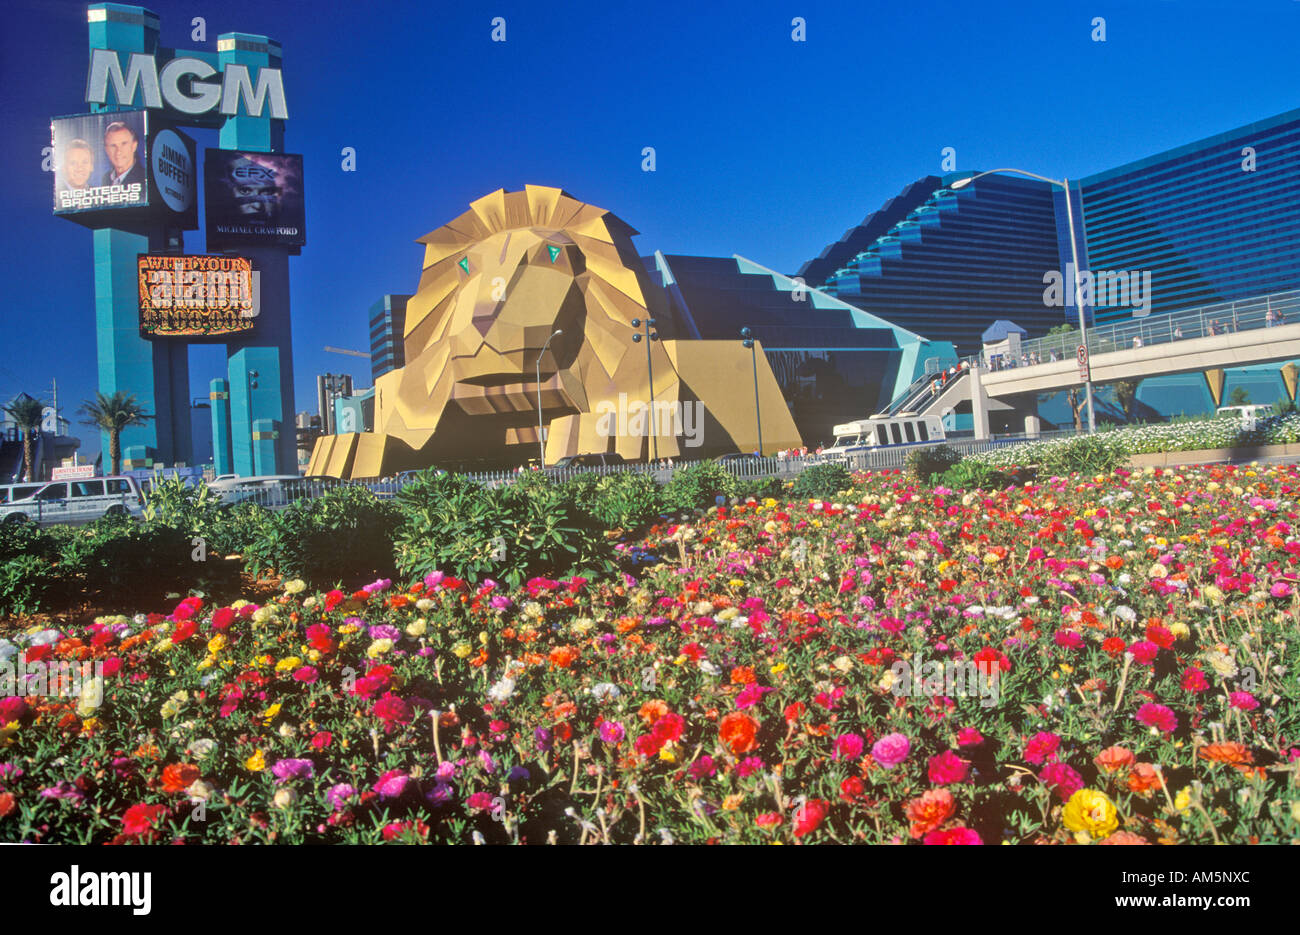 Replica Of Lion At The Entrance Of The Mgm Grand Hotel Las Vegas Nv Stock Photo Alamy